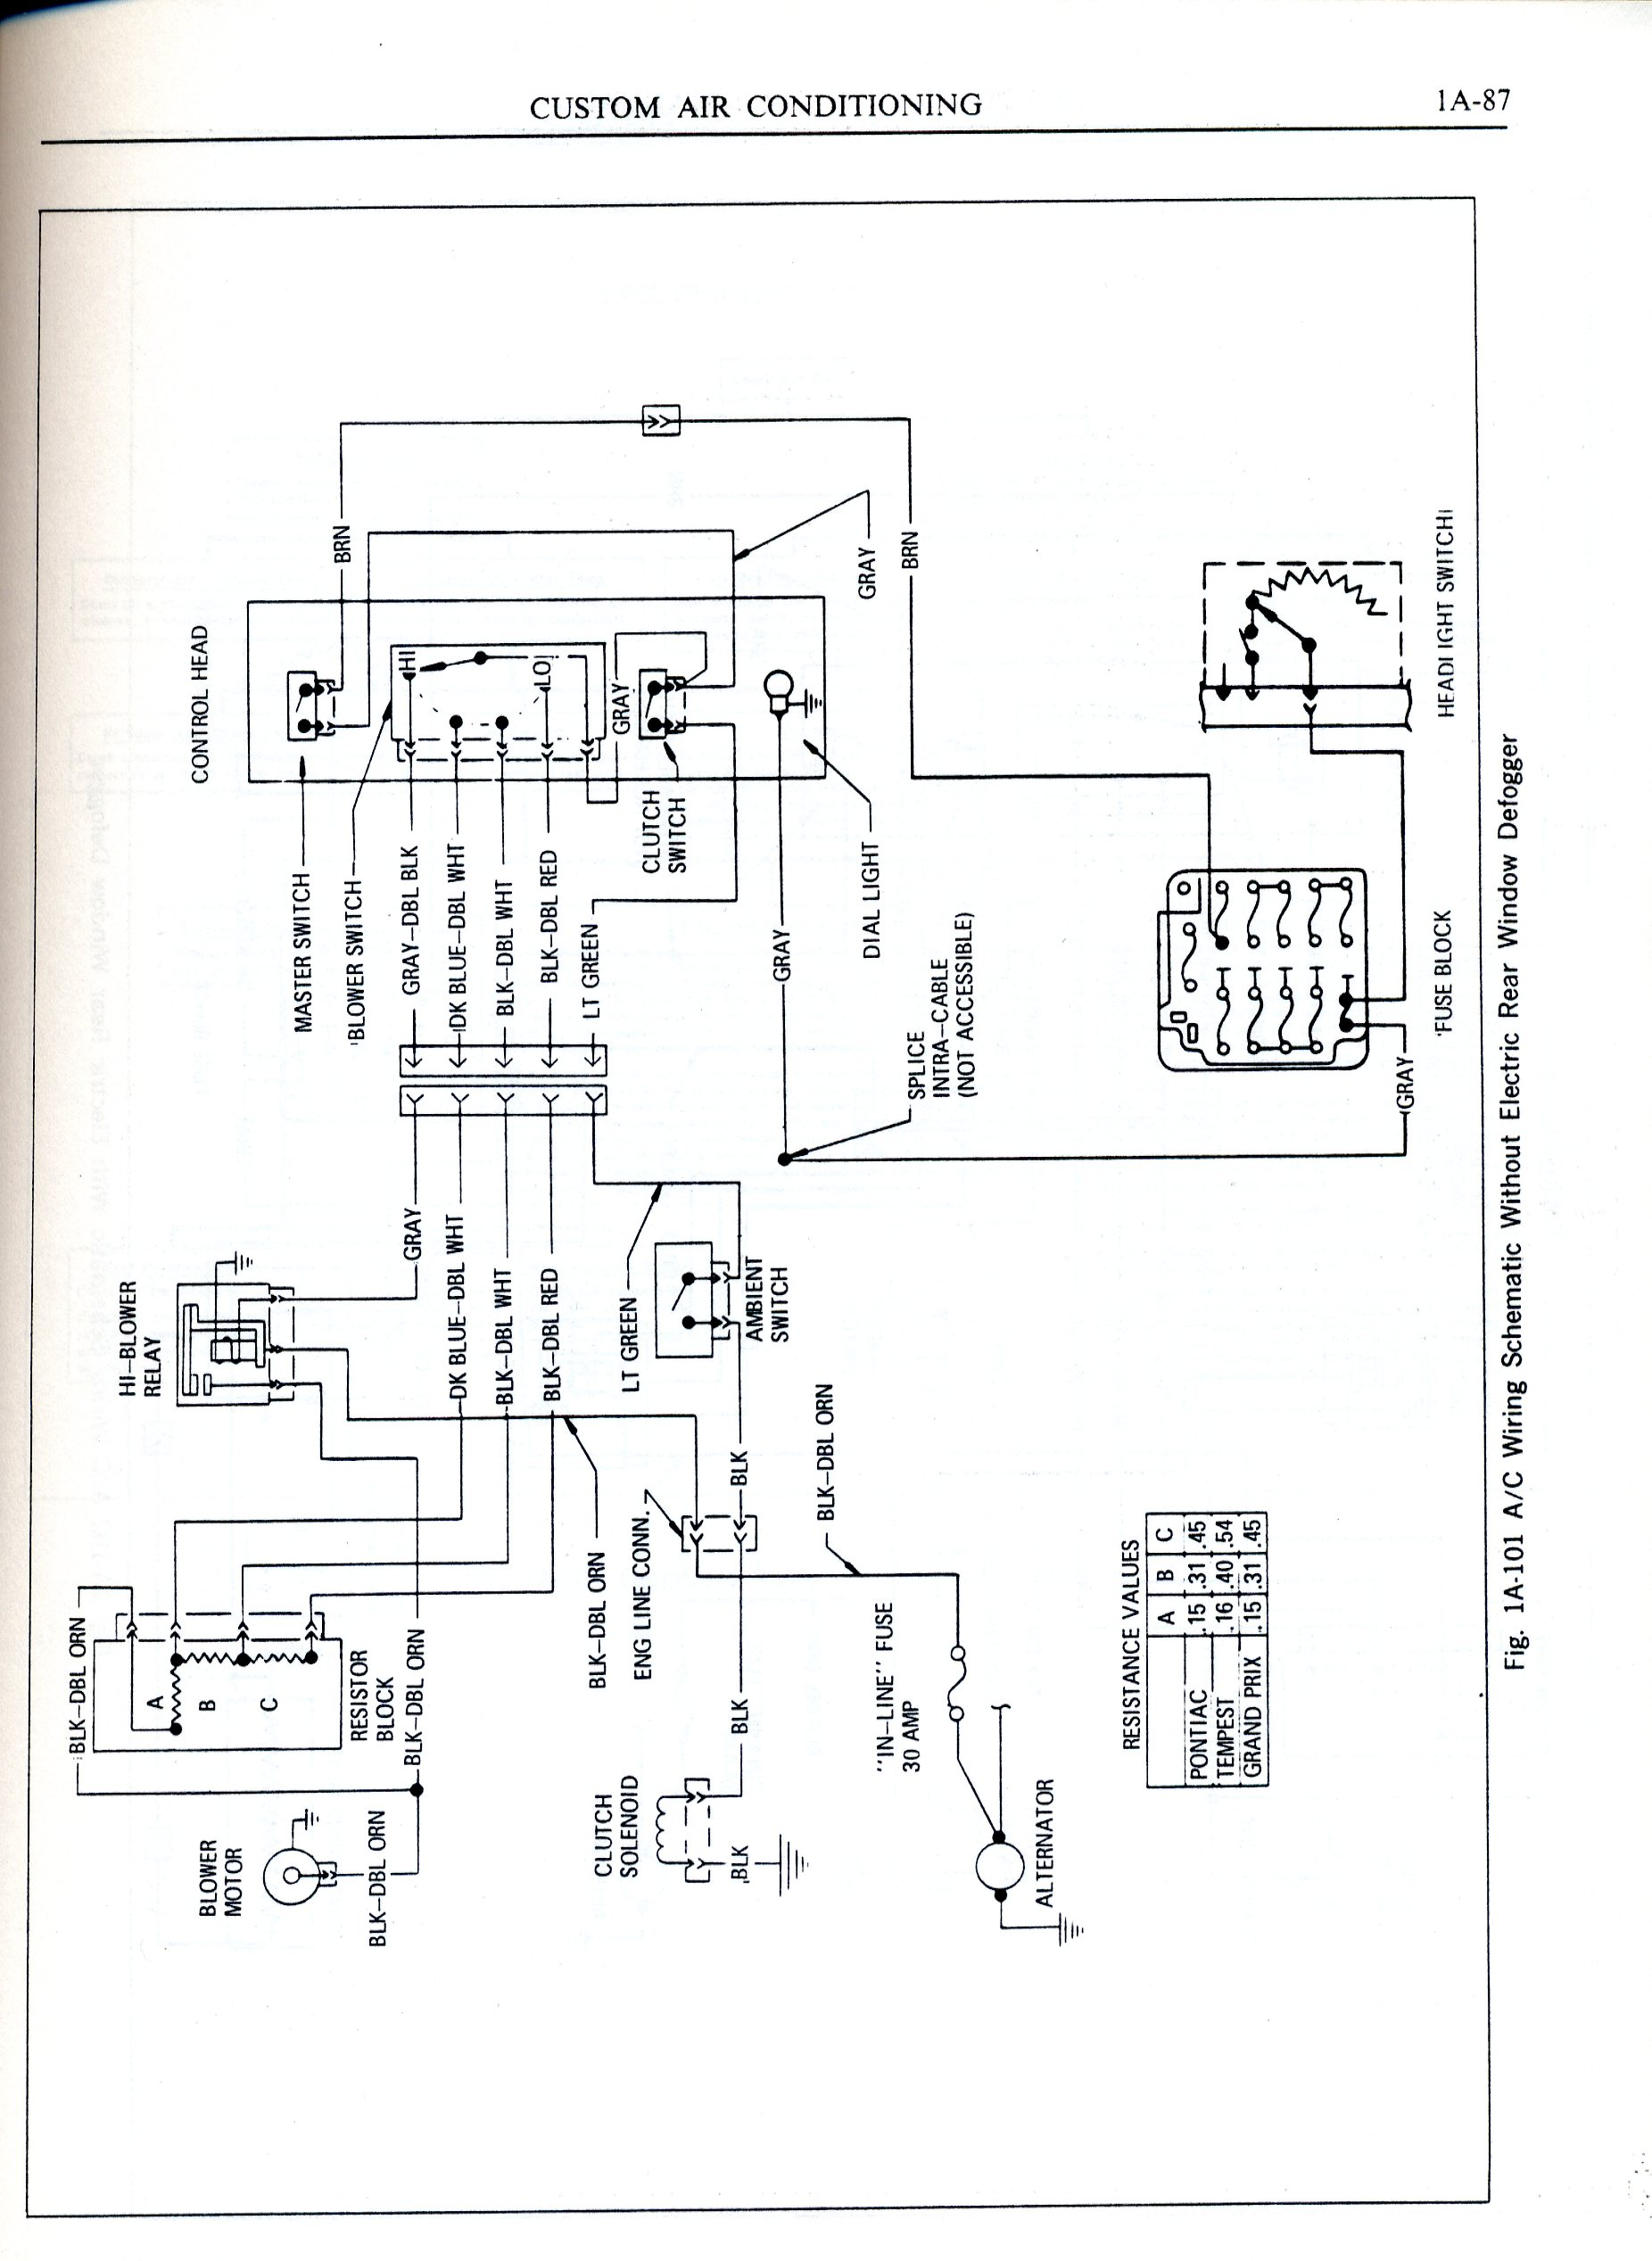 1971 Pontiac Lemans Heater/ac Switch Wiring Diagram